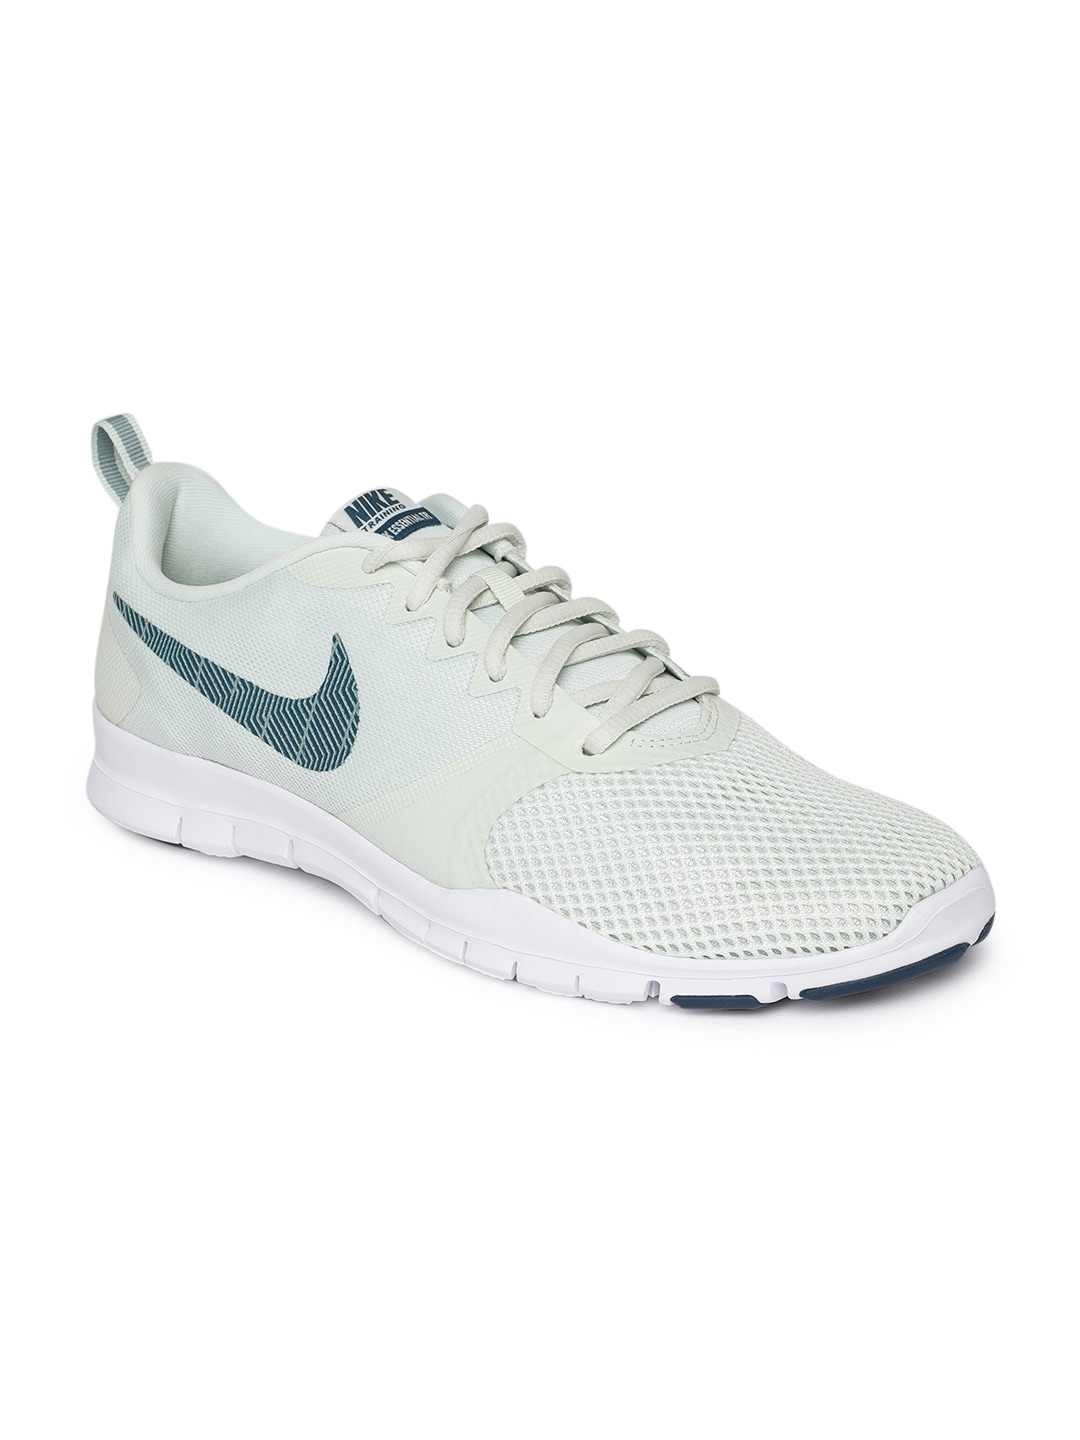 promo code fd542 09edc Nike Training Shoes Women - Buy Nike Training Shoes Women online in India